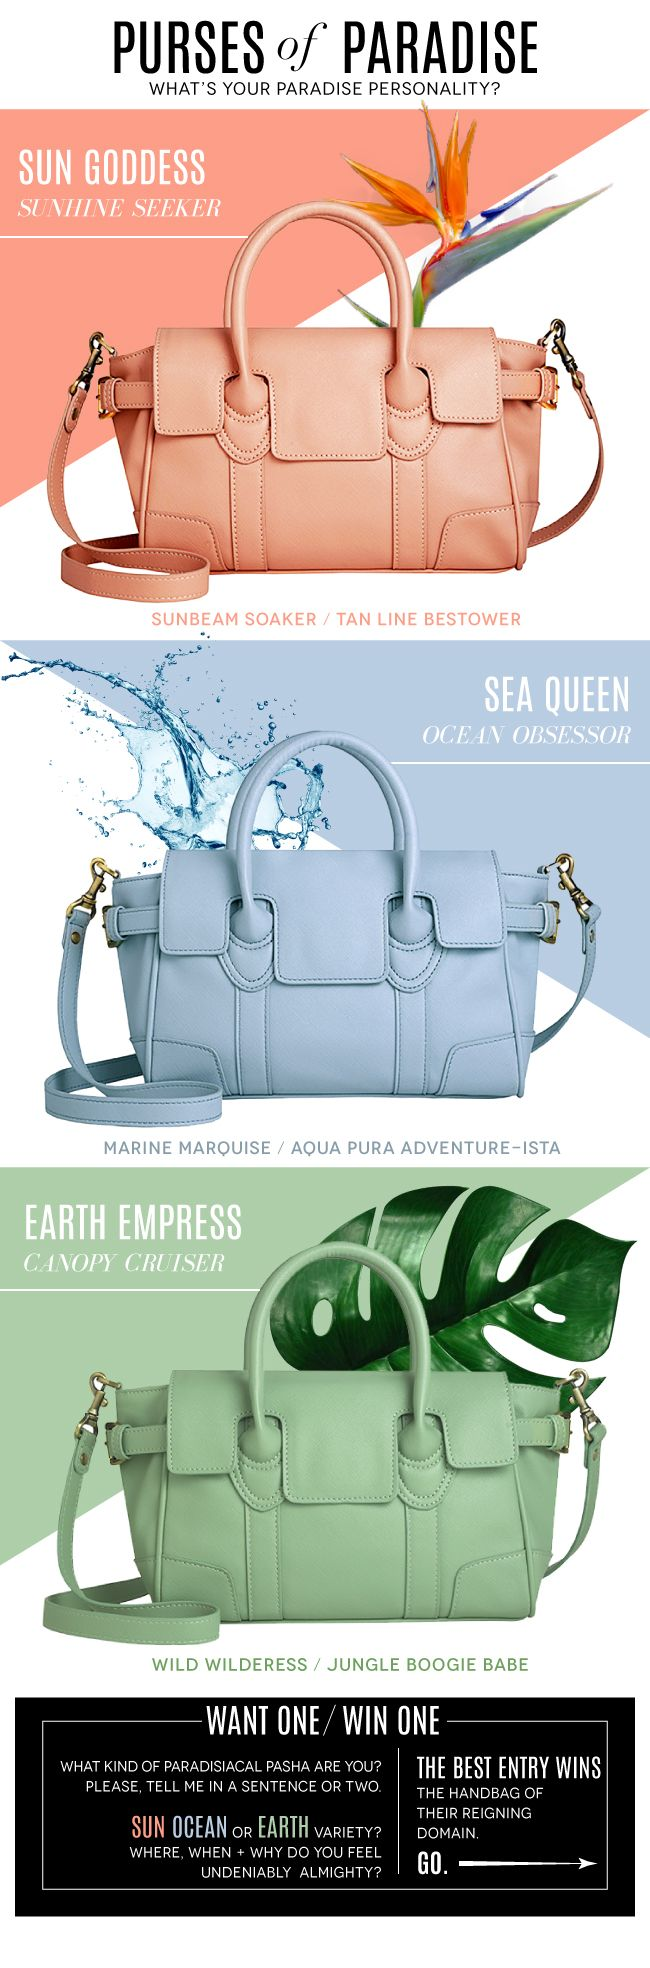 Purses of Paradise Handbag GIVEAWAY! Click through to comment + enter to win a vegan Zink handbag! (giveaway closes 07/24)